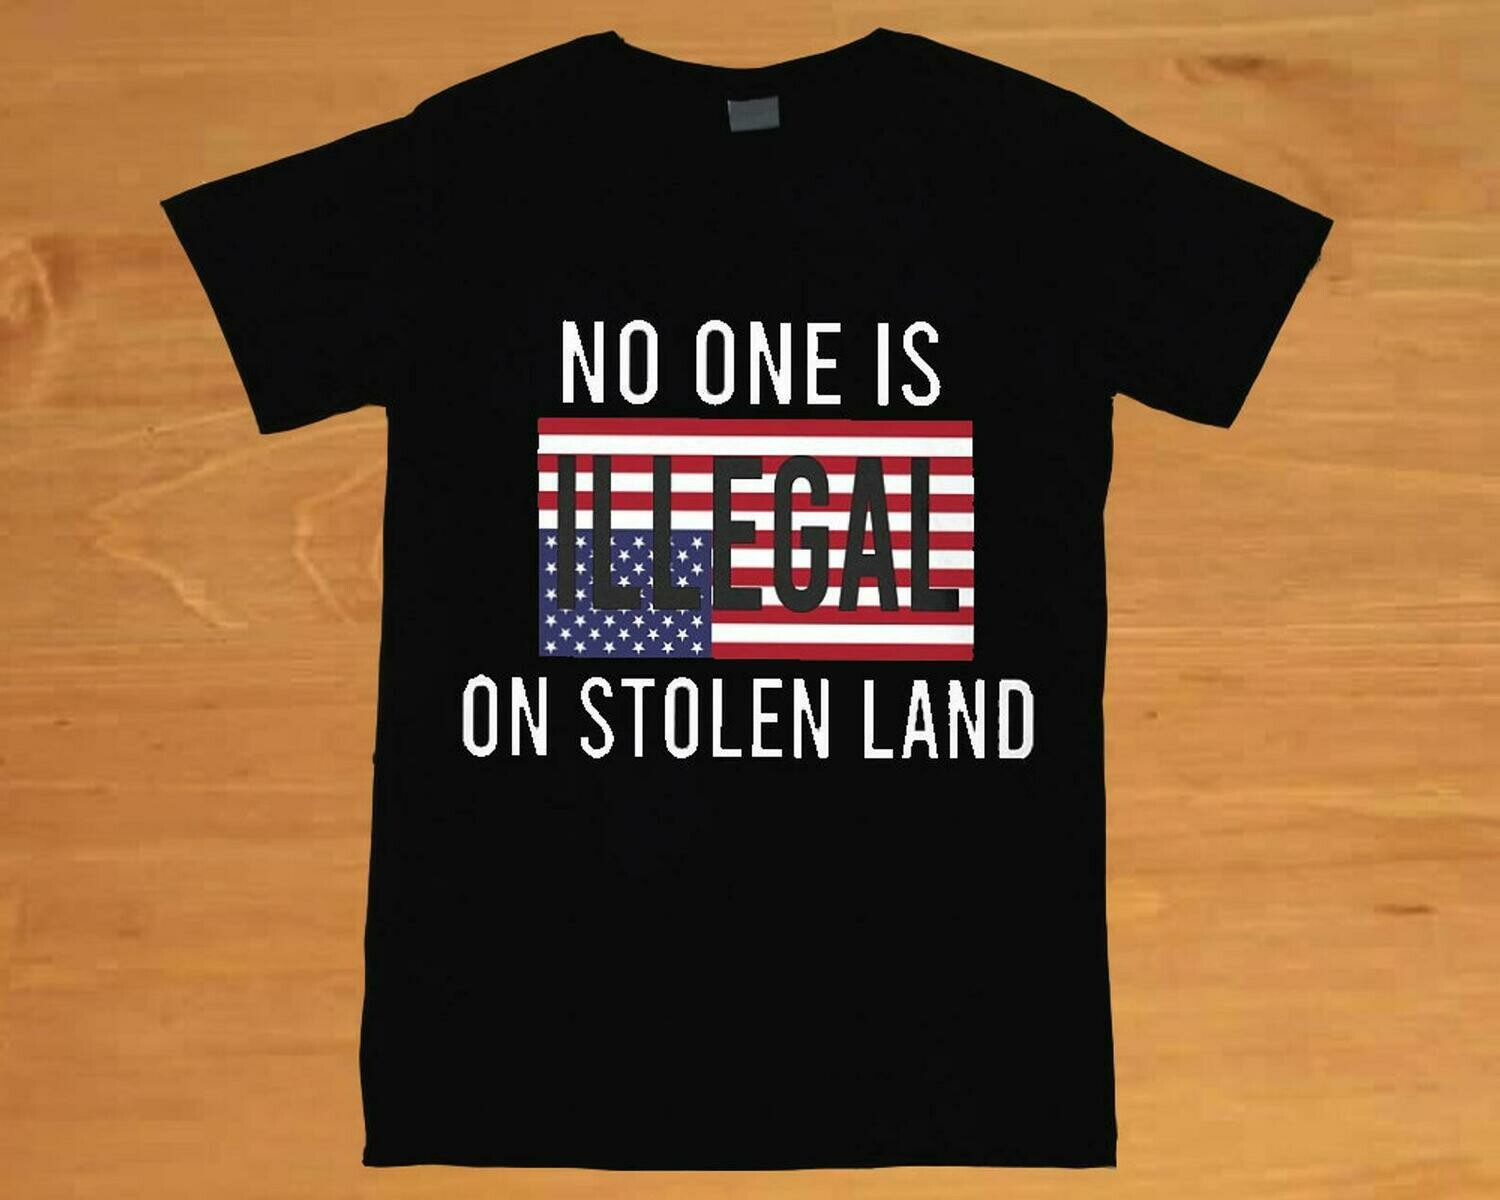 no one is illegal on stolen land shirt no human is illegal immigrants end anti racism shirt powwow pow wow shirt native american shirt tee